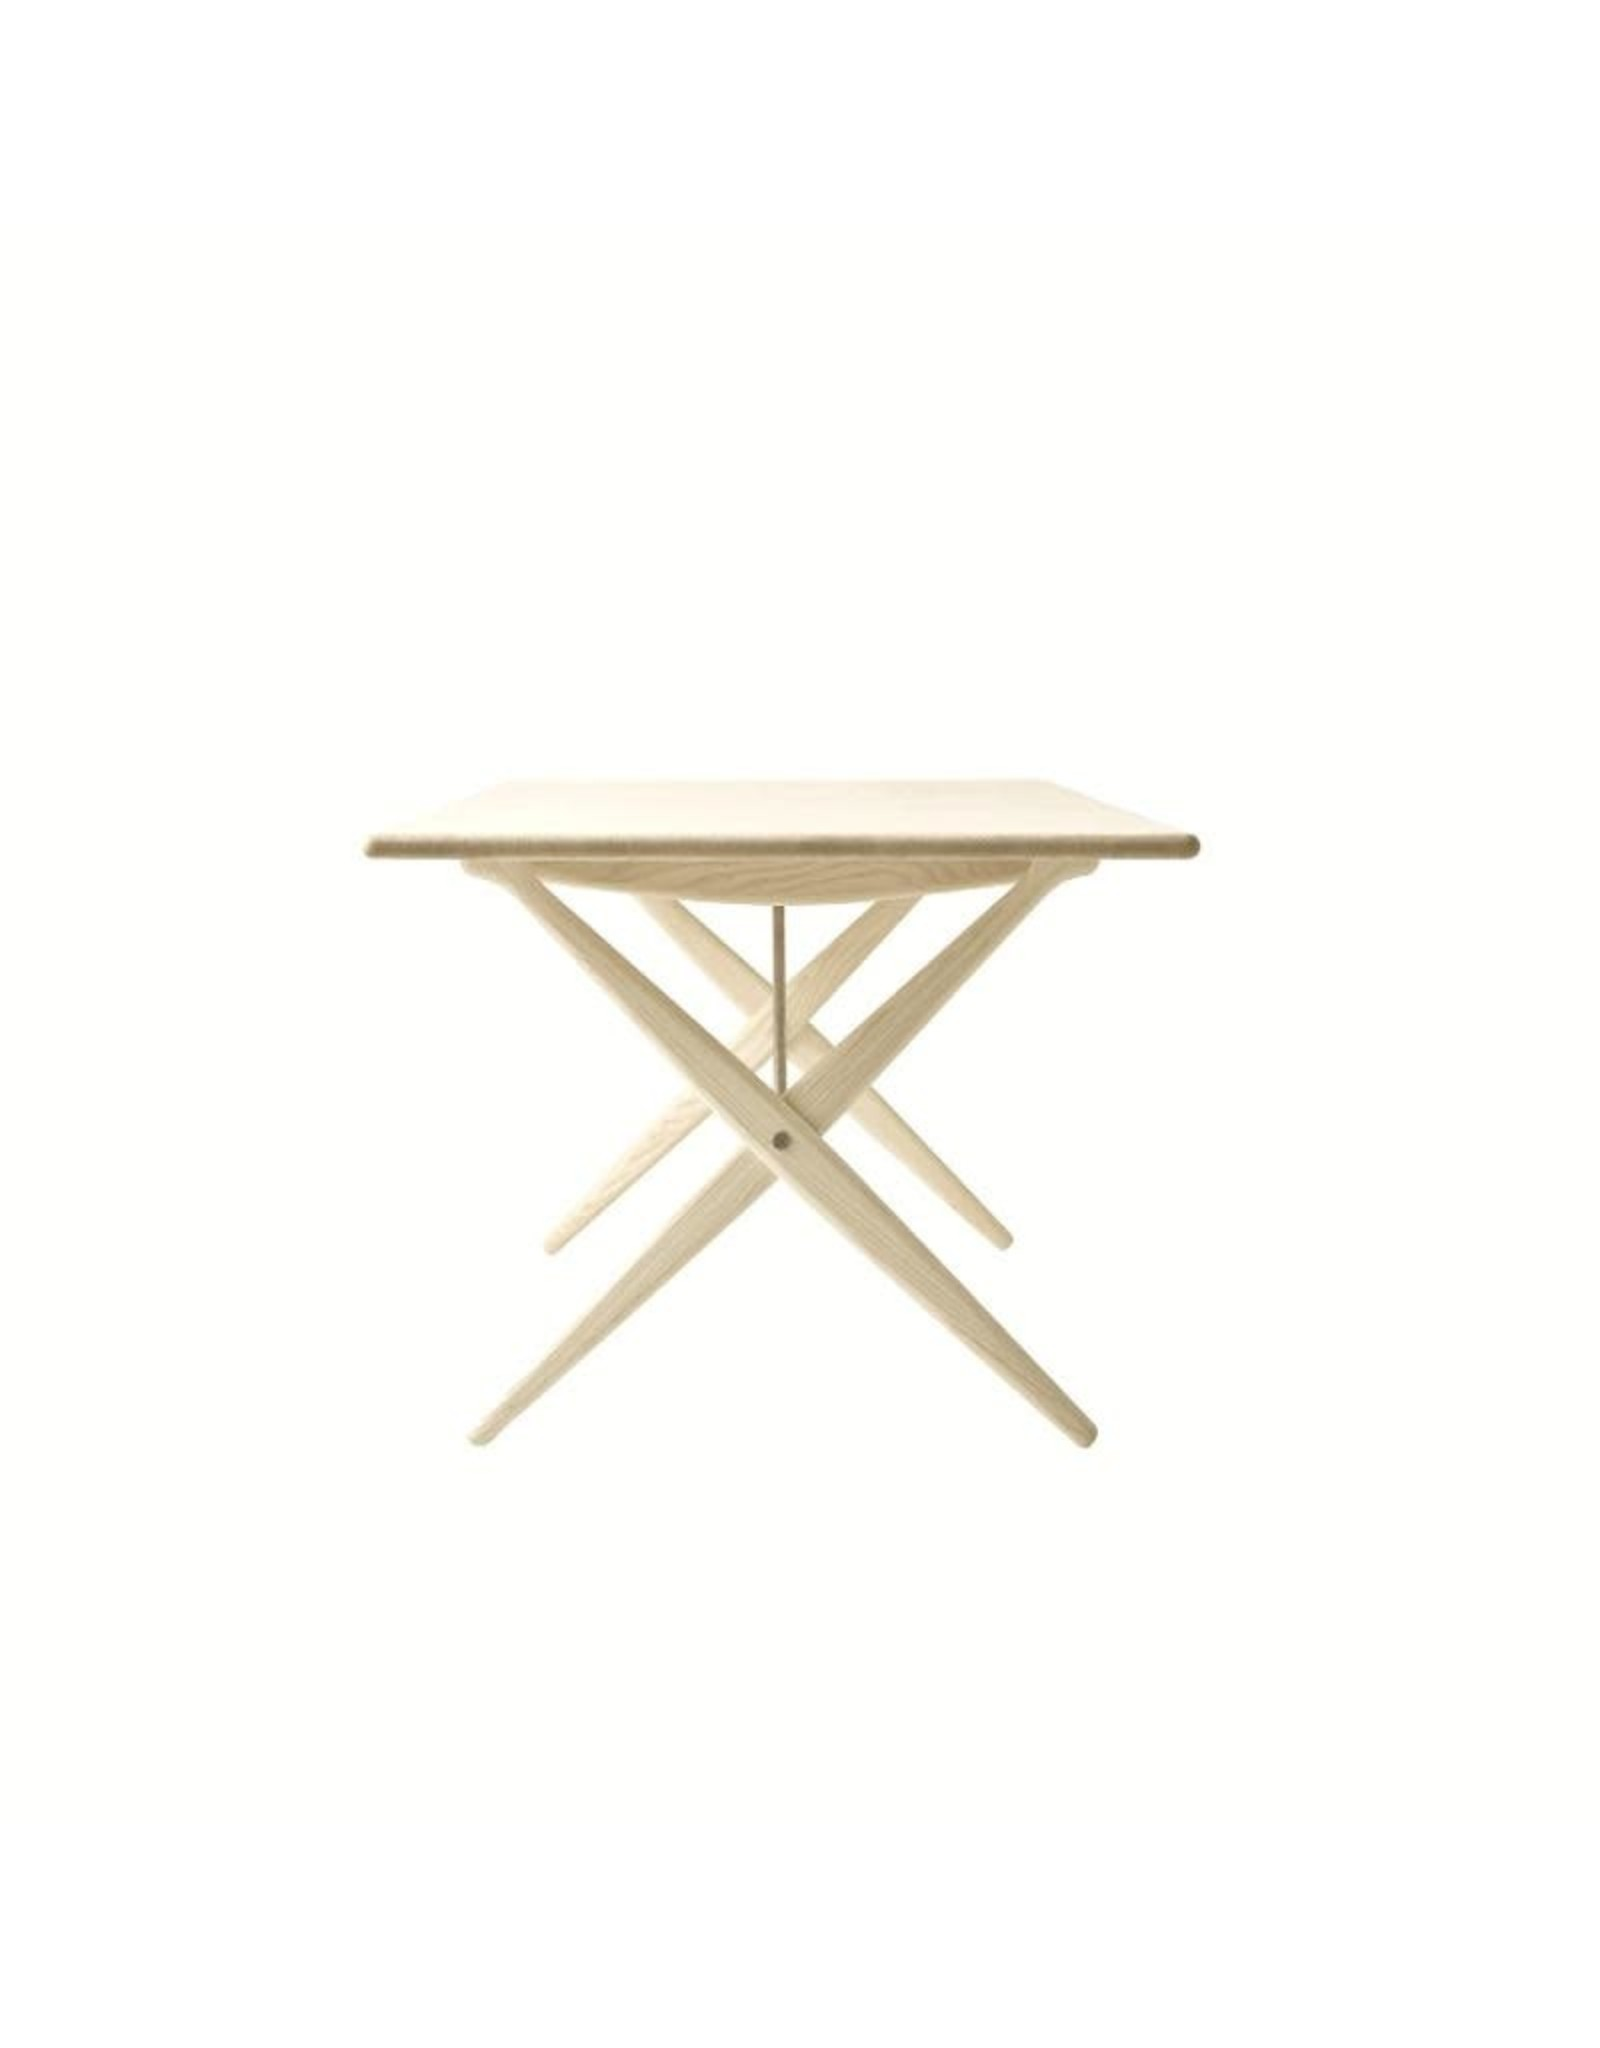 PP85  CROSS LEGGED EXTENDABLE TABLE